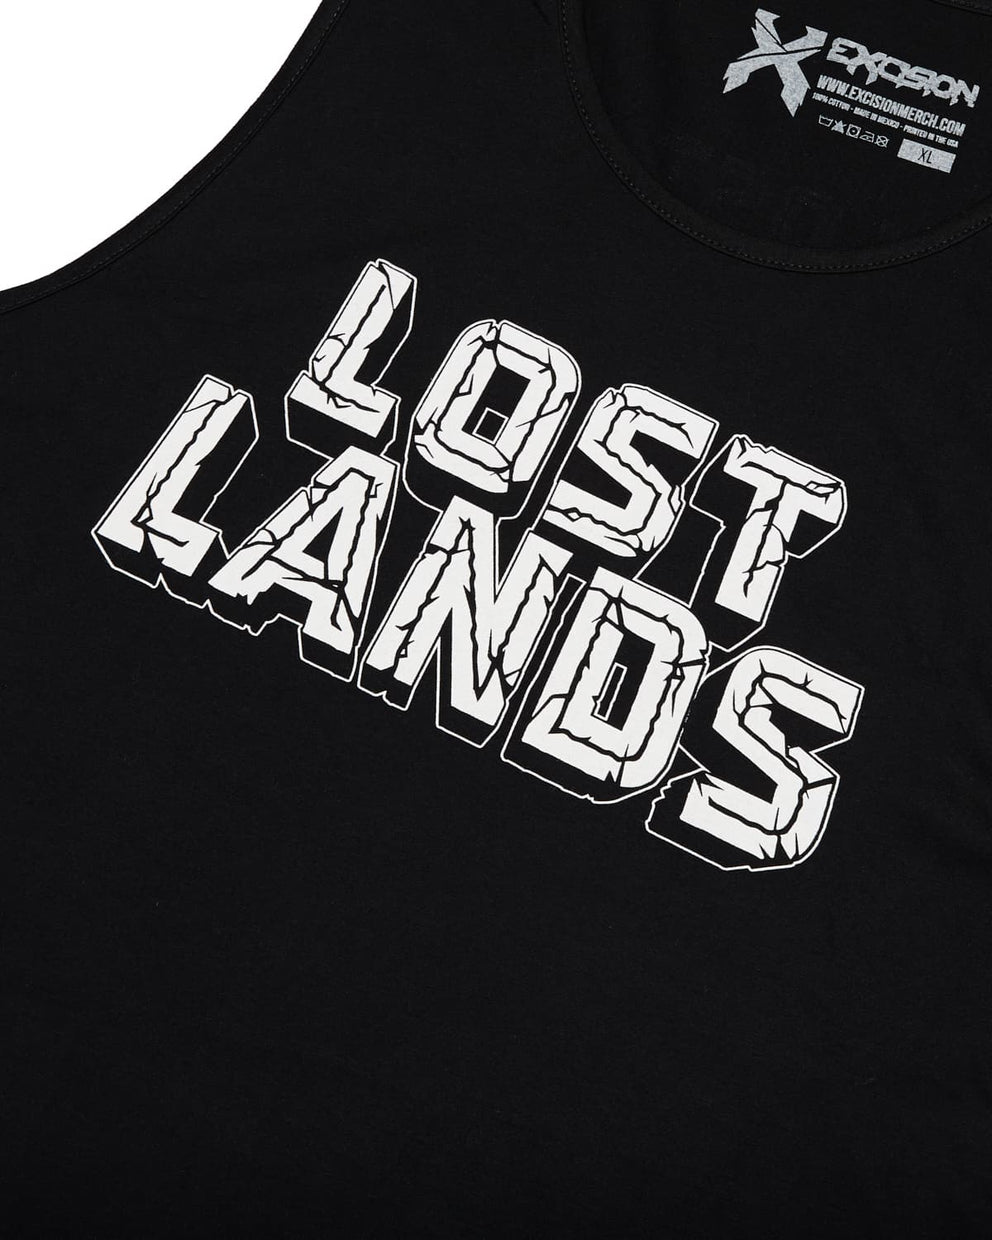 Official Lost Lands 2018 Tank Top (Black/White)